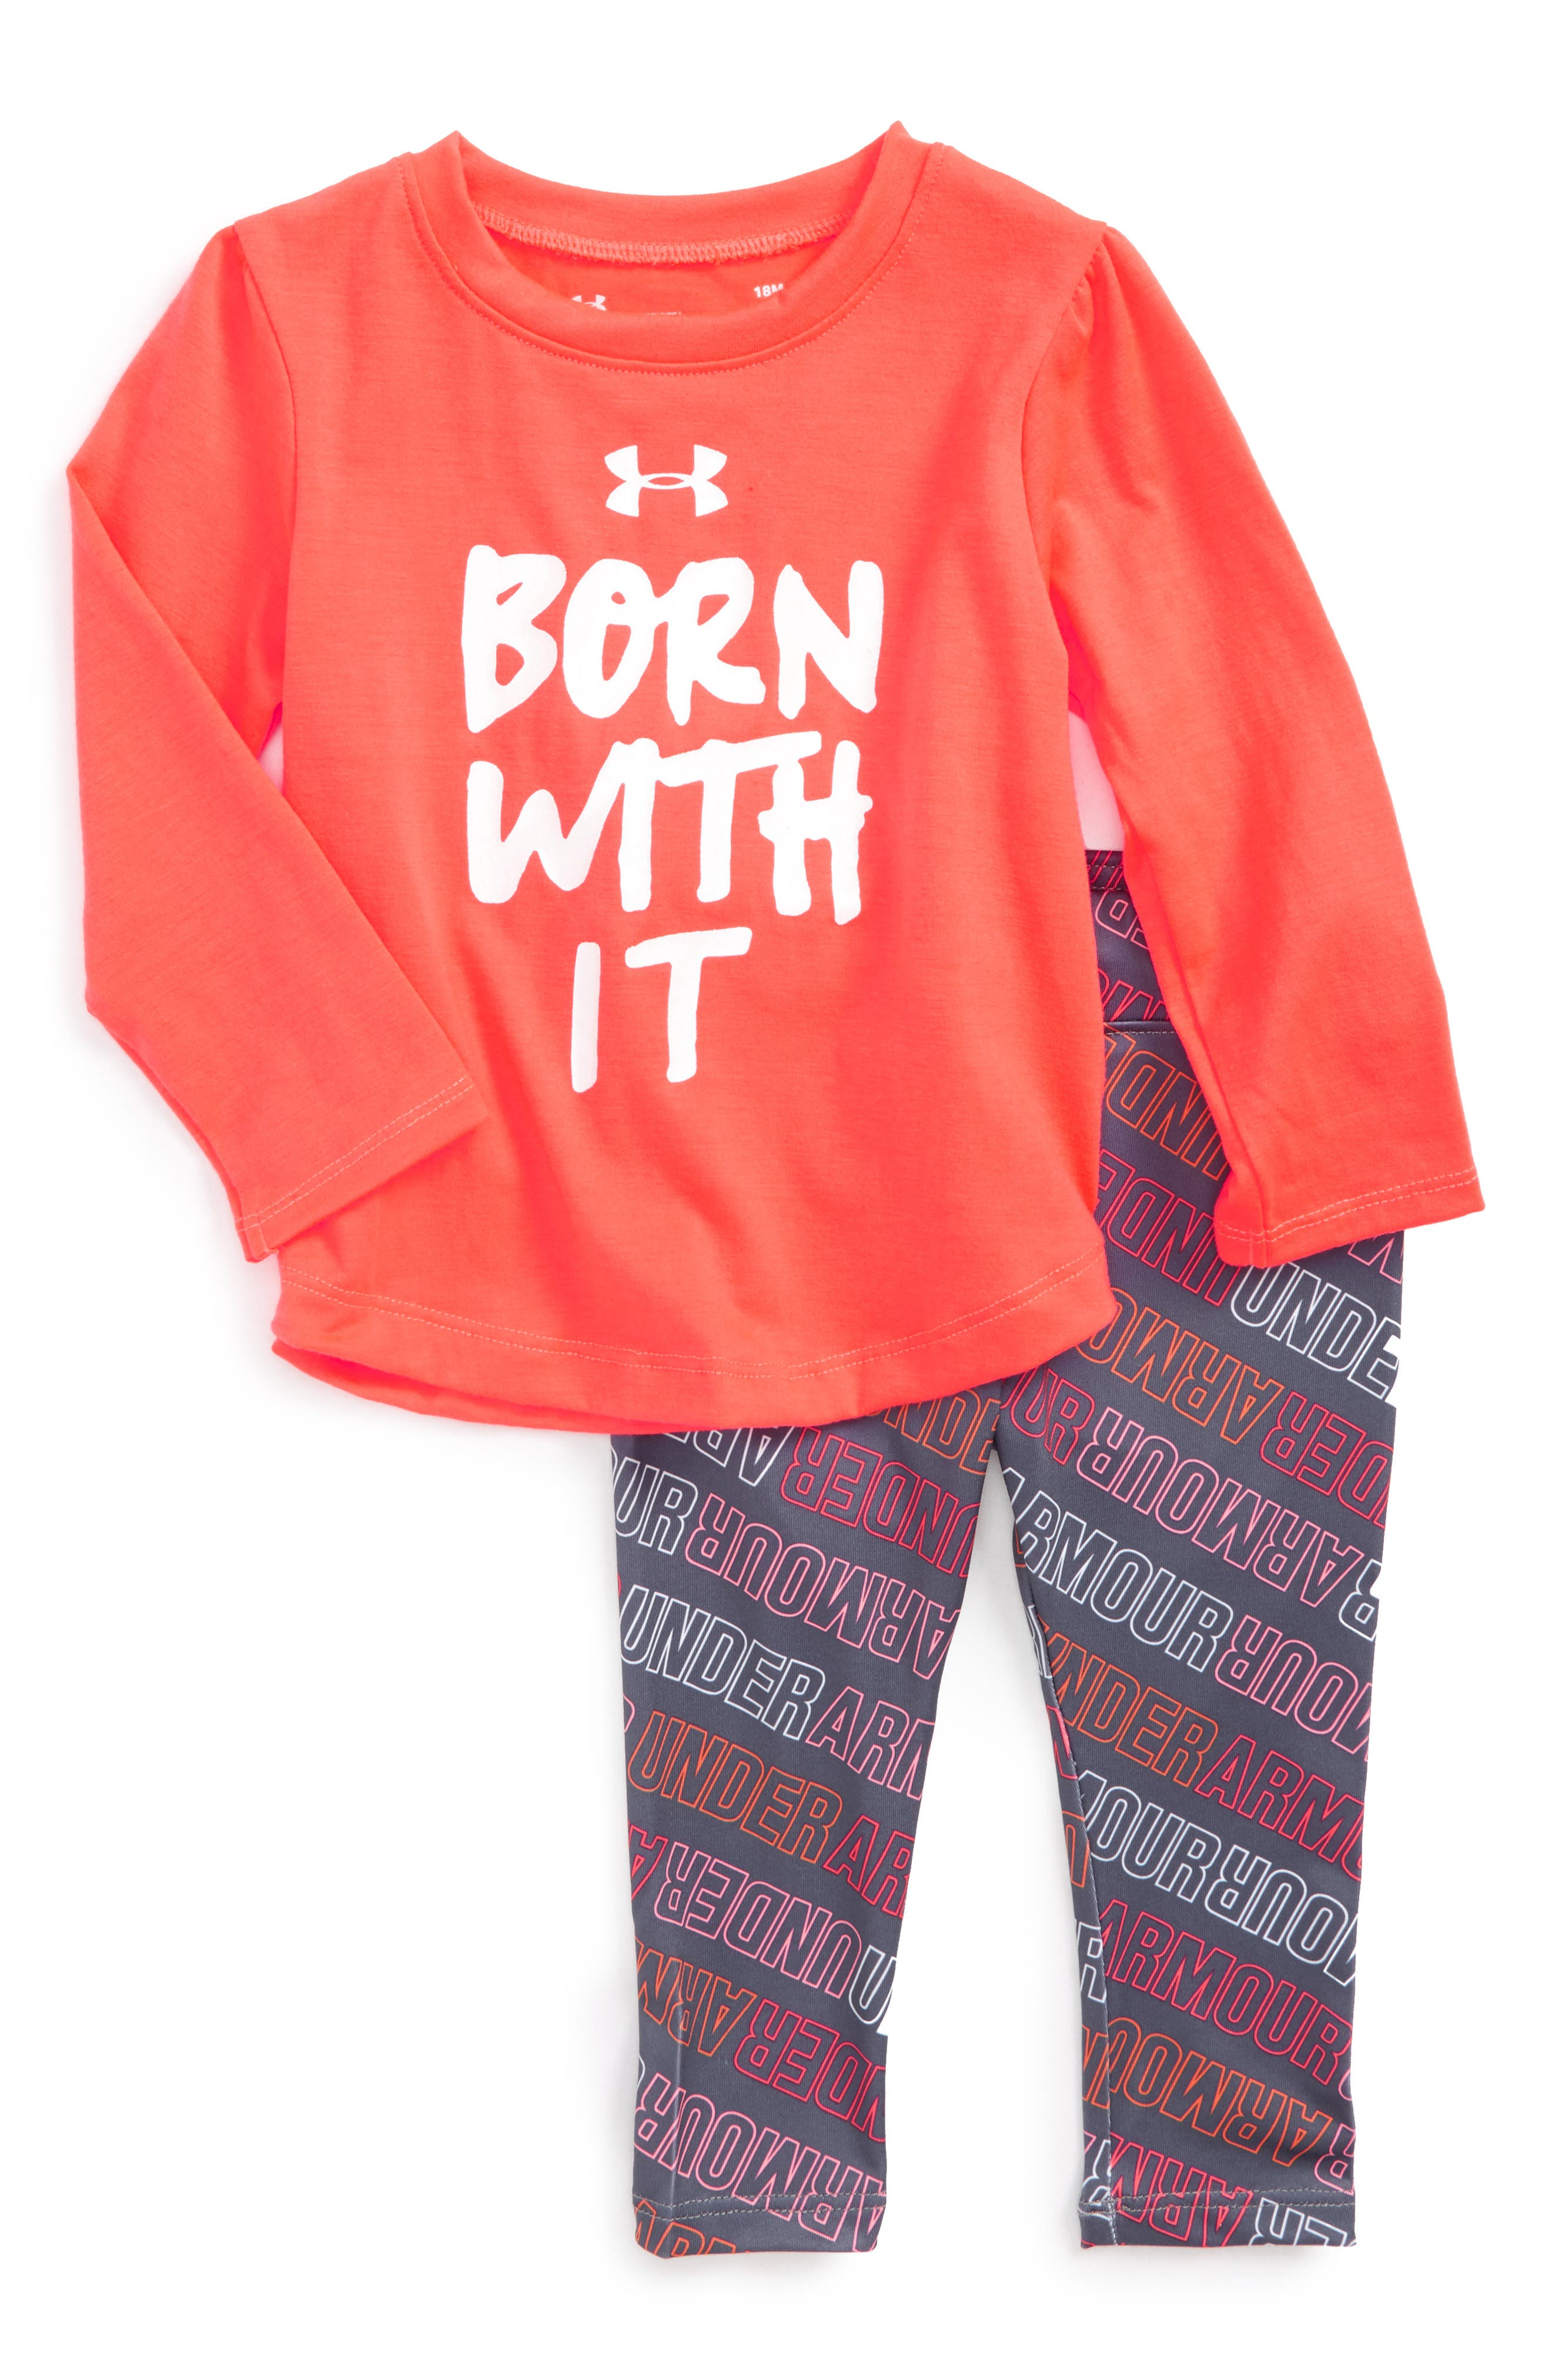 Main Image - Under Armour Born With It Tee & Pants Set (Baby Girls)